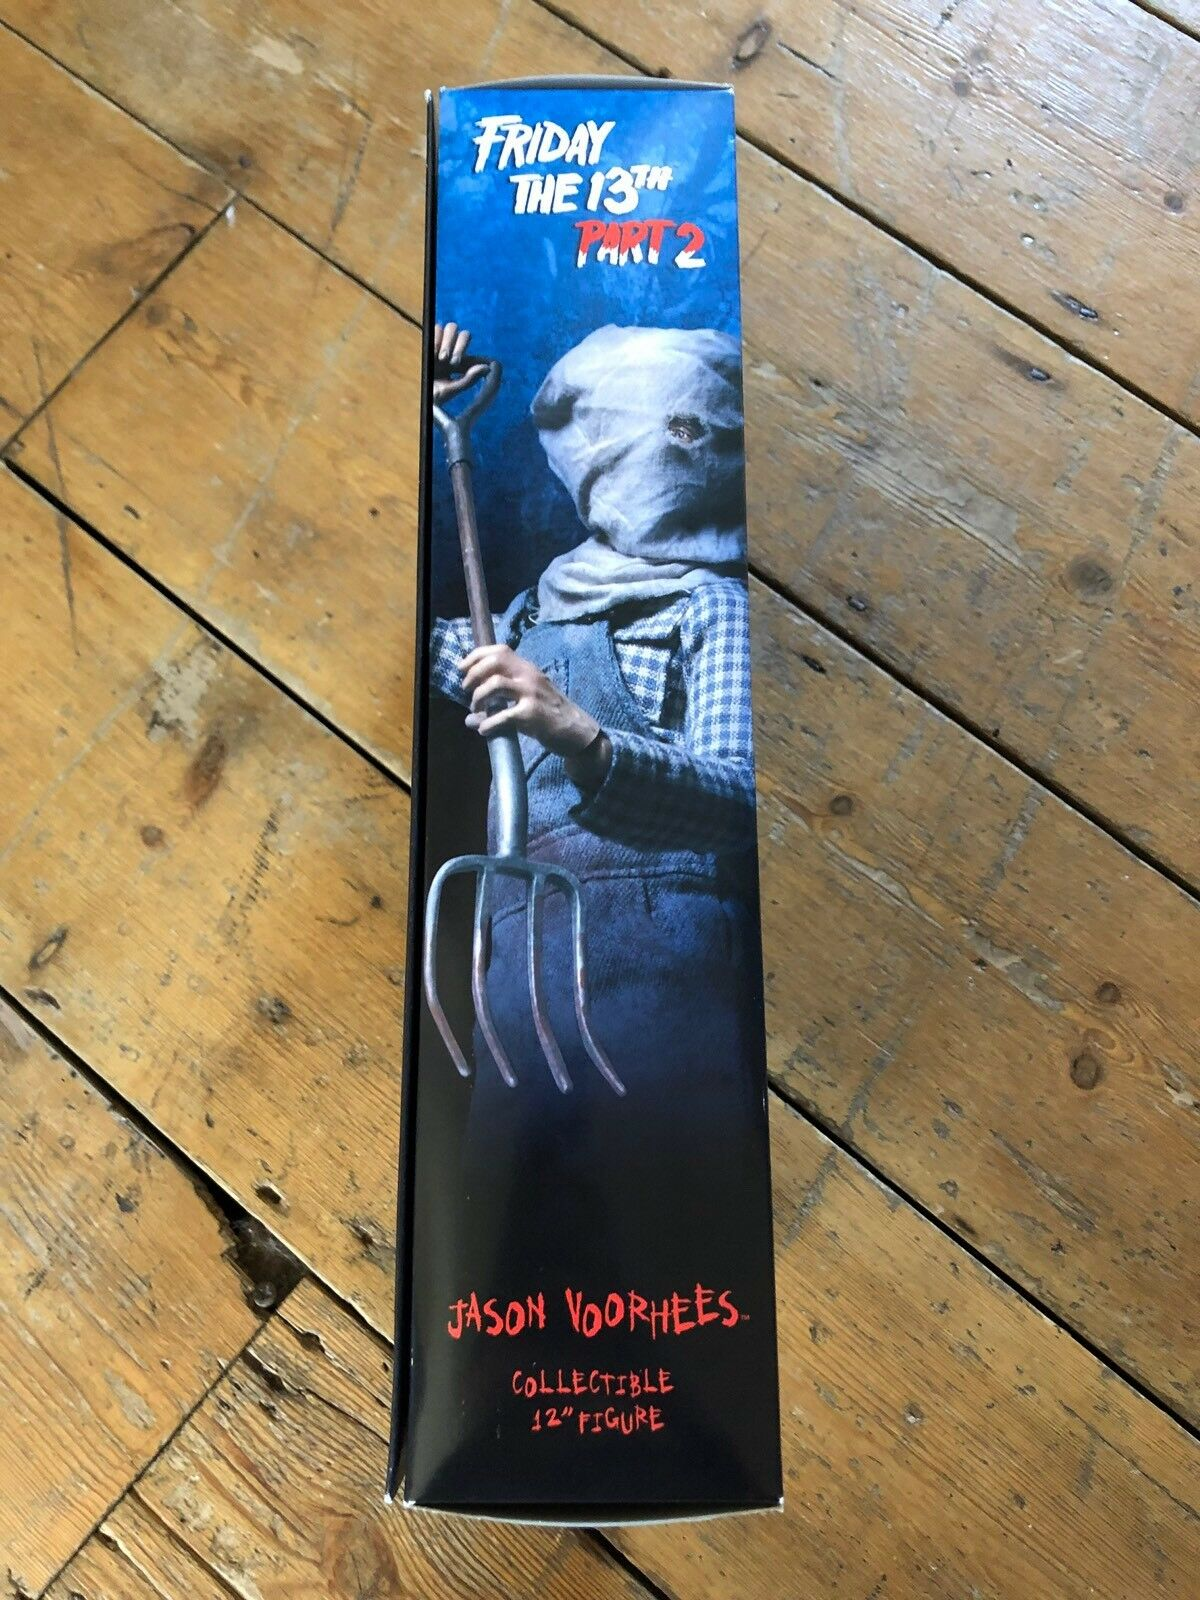 Sideshow Sideshow Sideshow Friday The 13 Part II Jason Voorhees Exclusive AFSSC99 b523a1